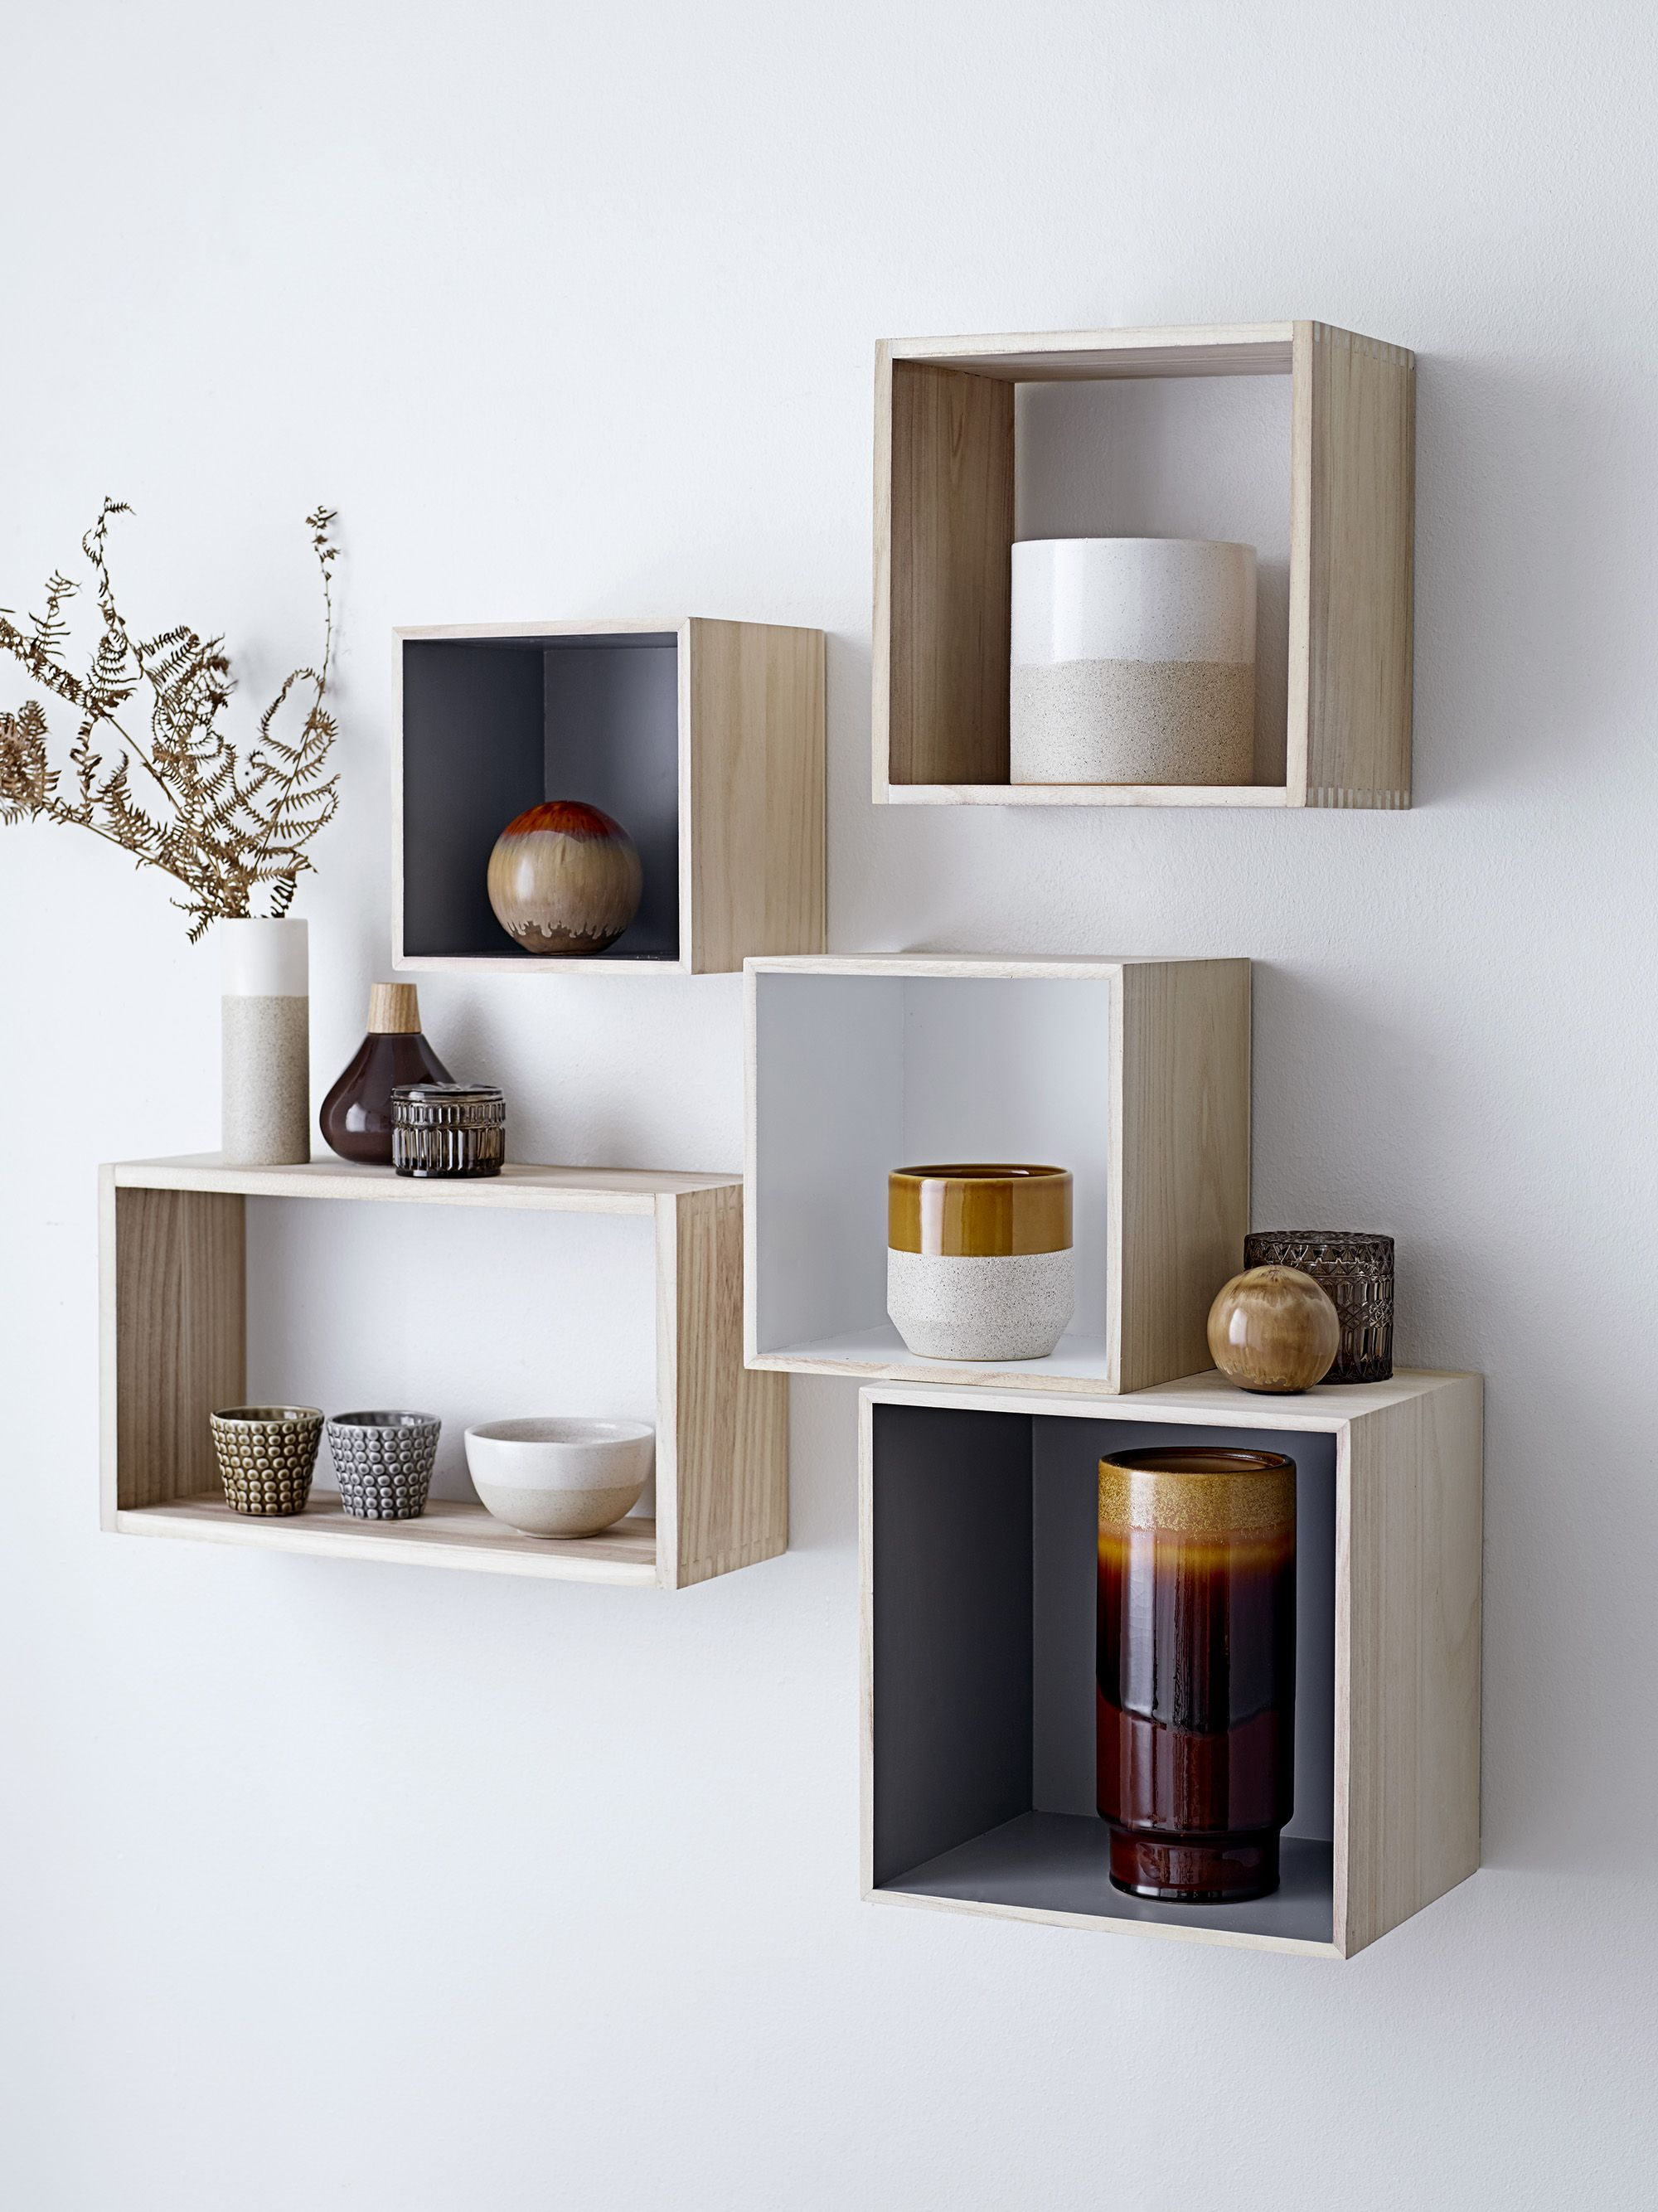 Create A Personal Display With Stylish Boxes